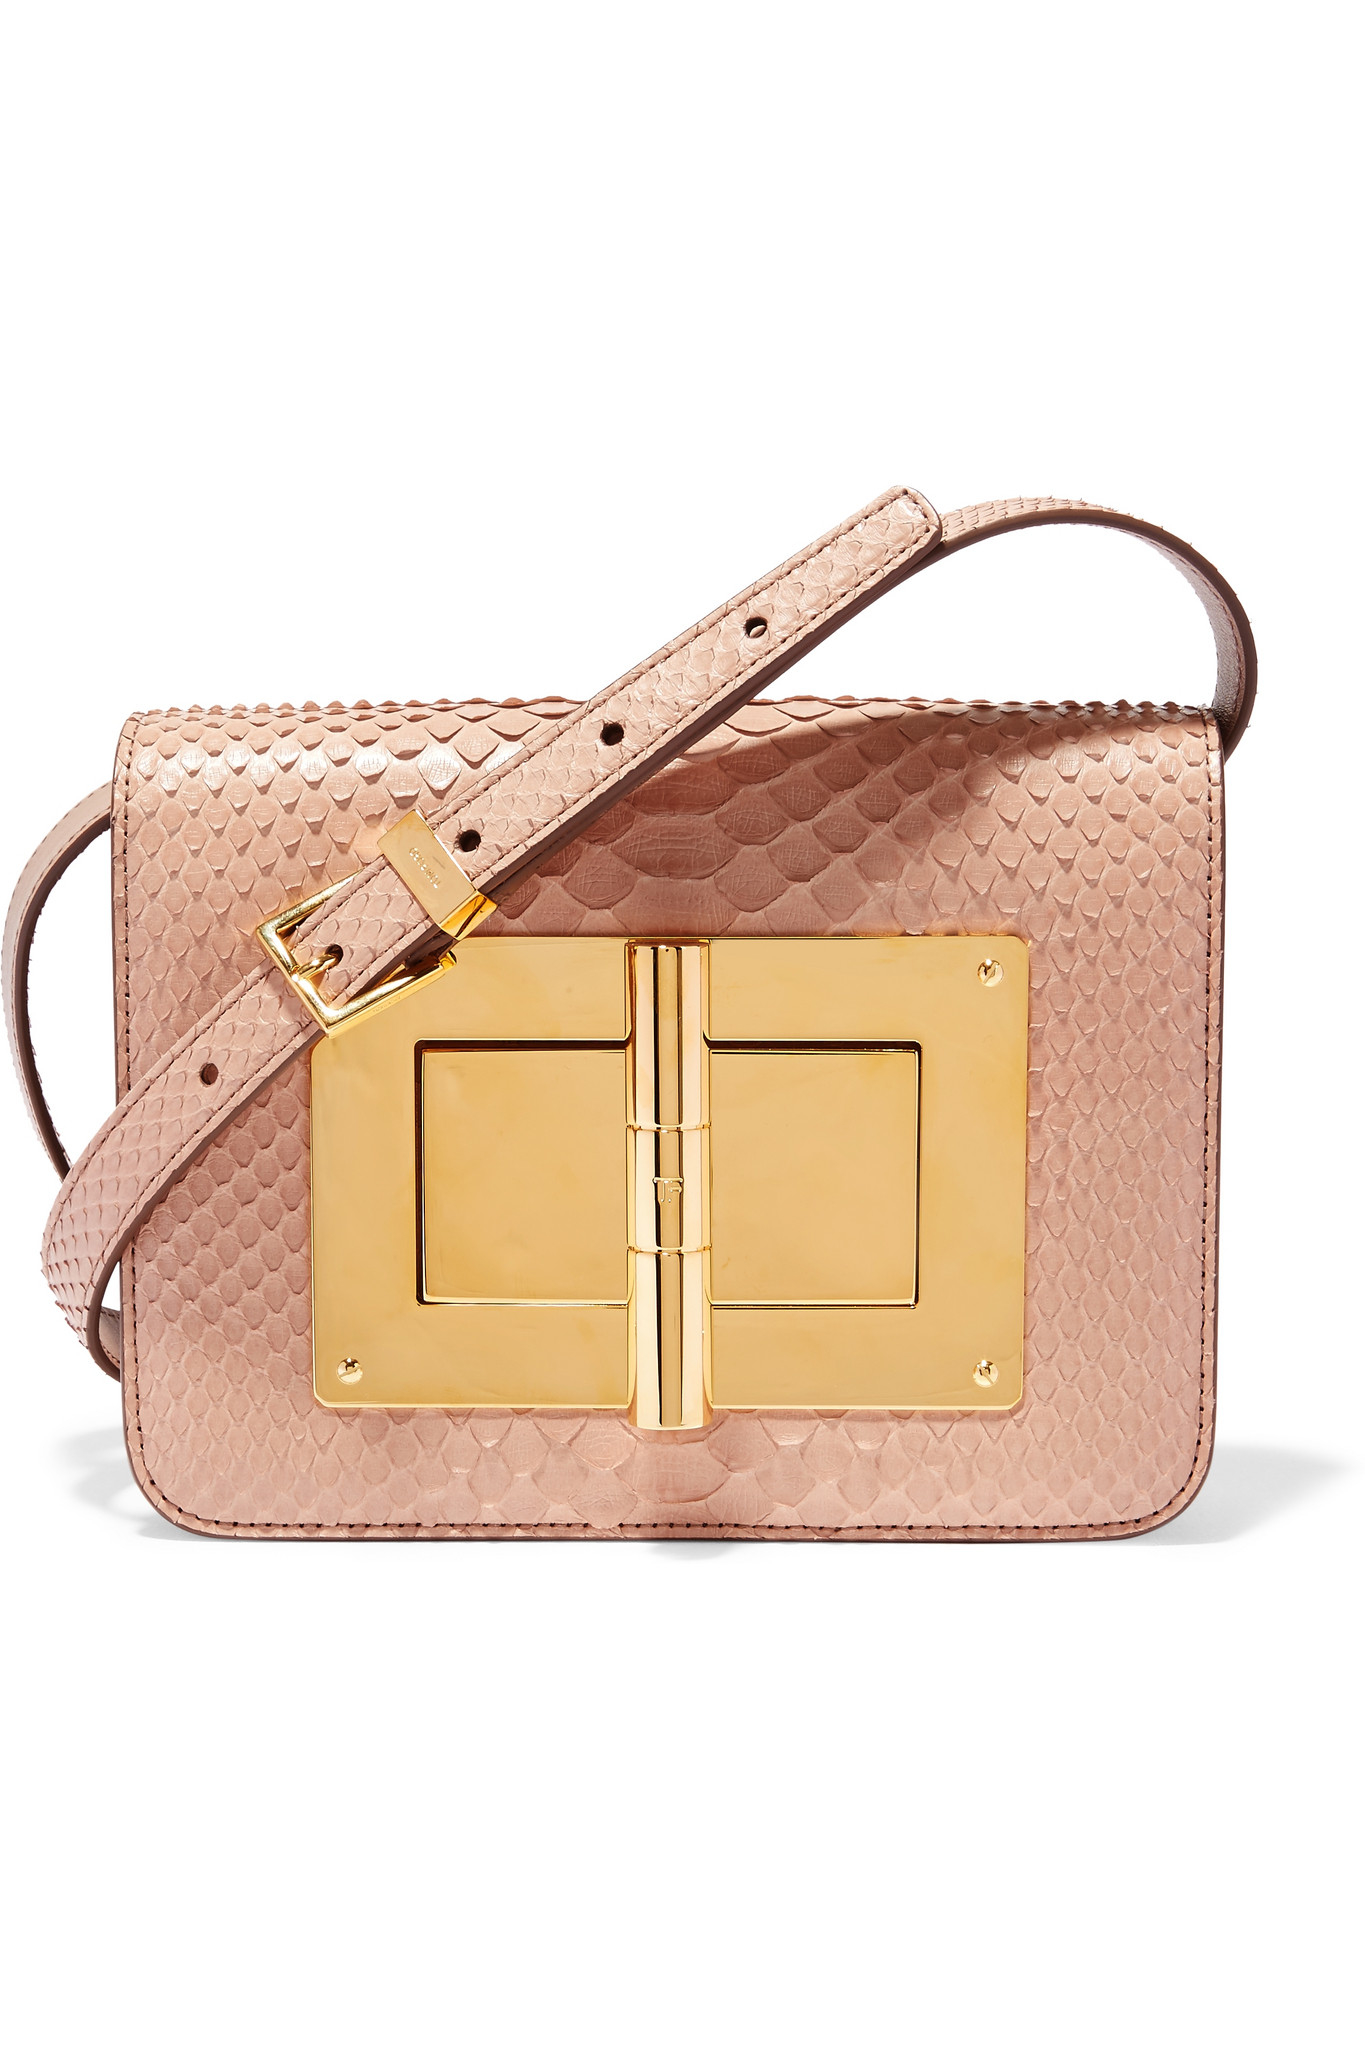 7f3510c9f94d Tom Ford Natalia Small Python Shoulder Bag in Pink - Lyst